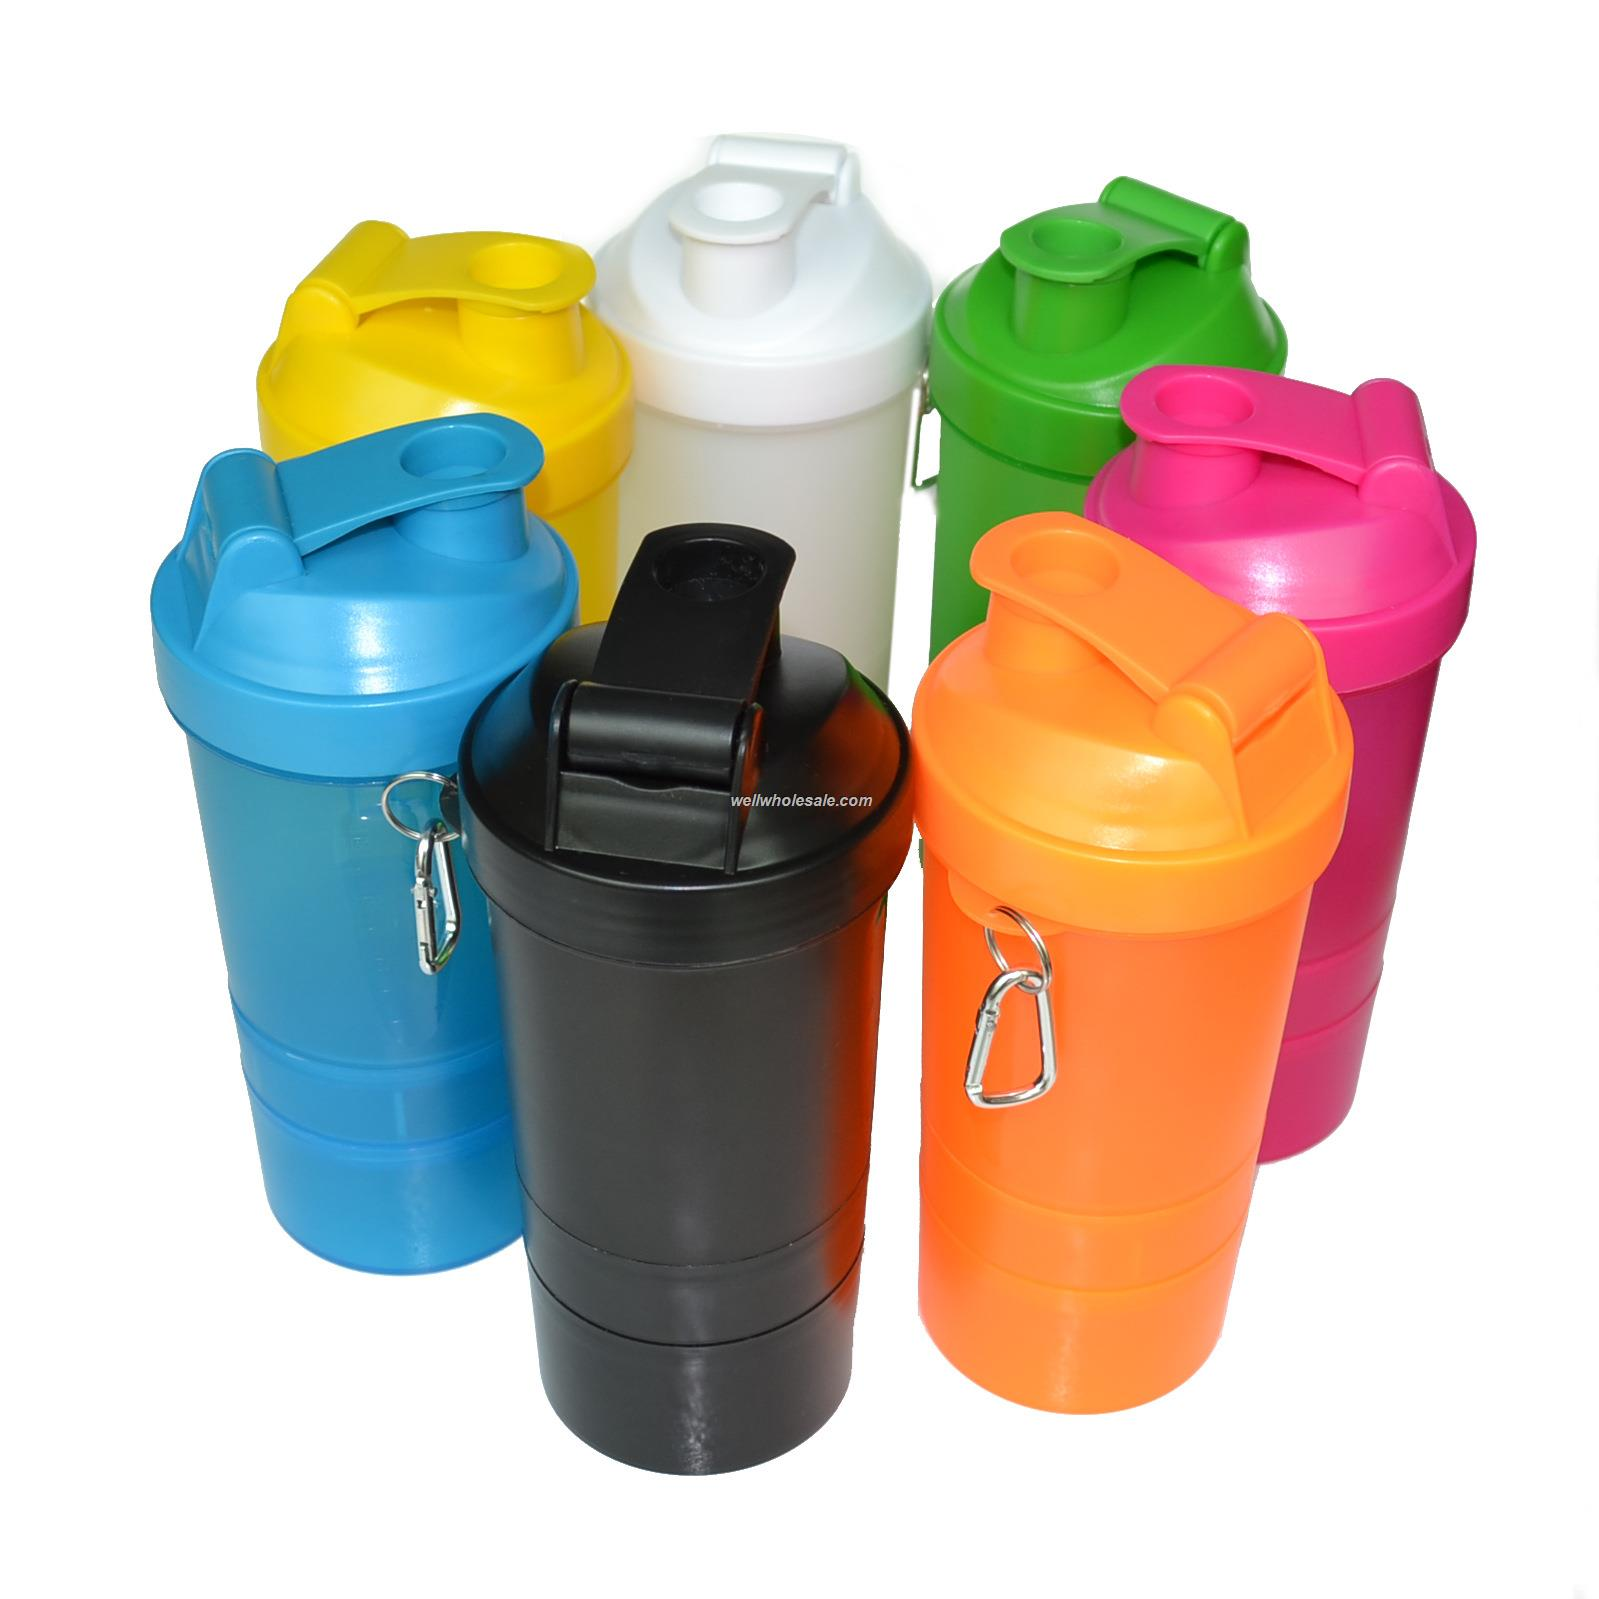 500ml ALL-IN-ONE blender bottle